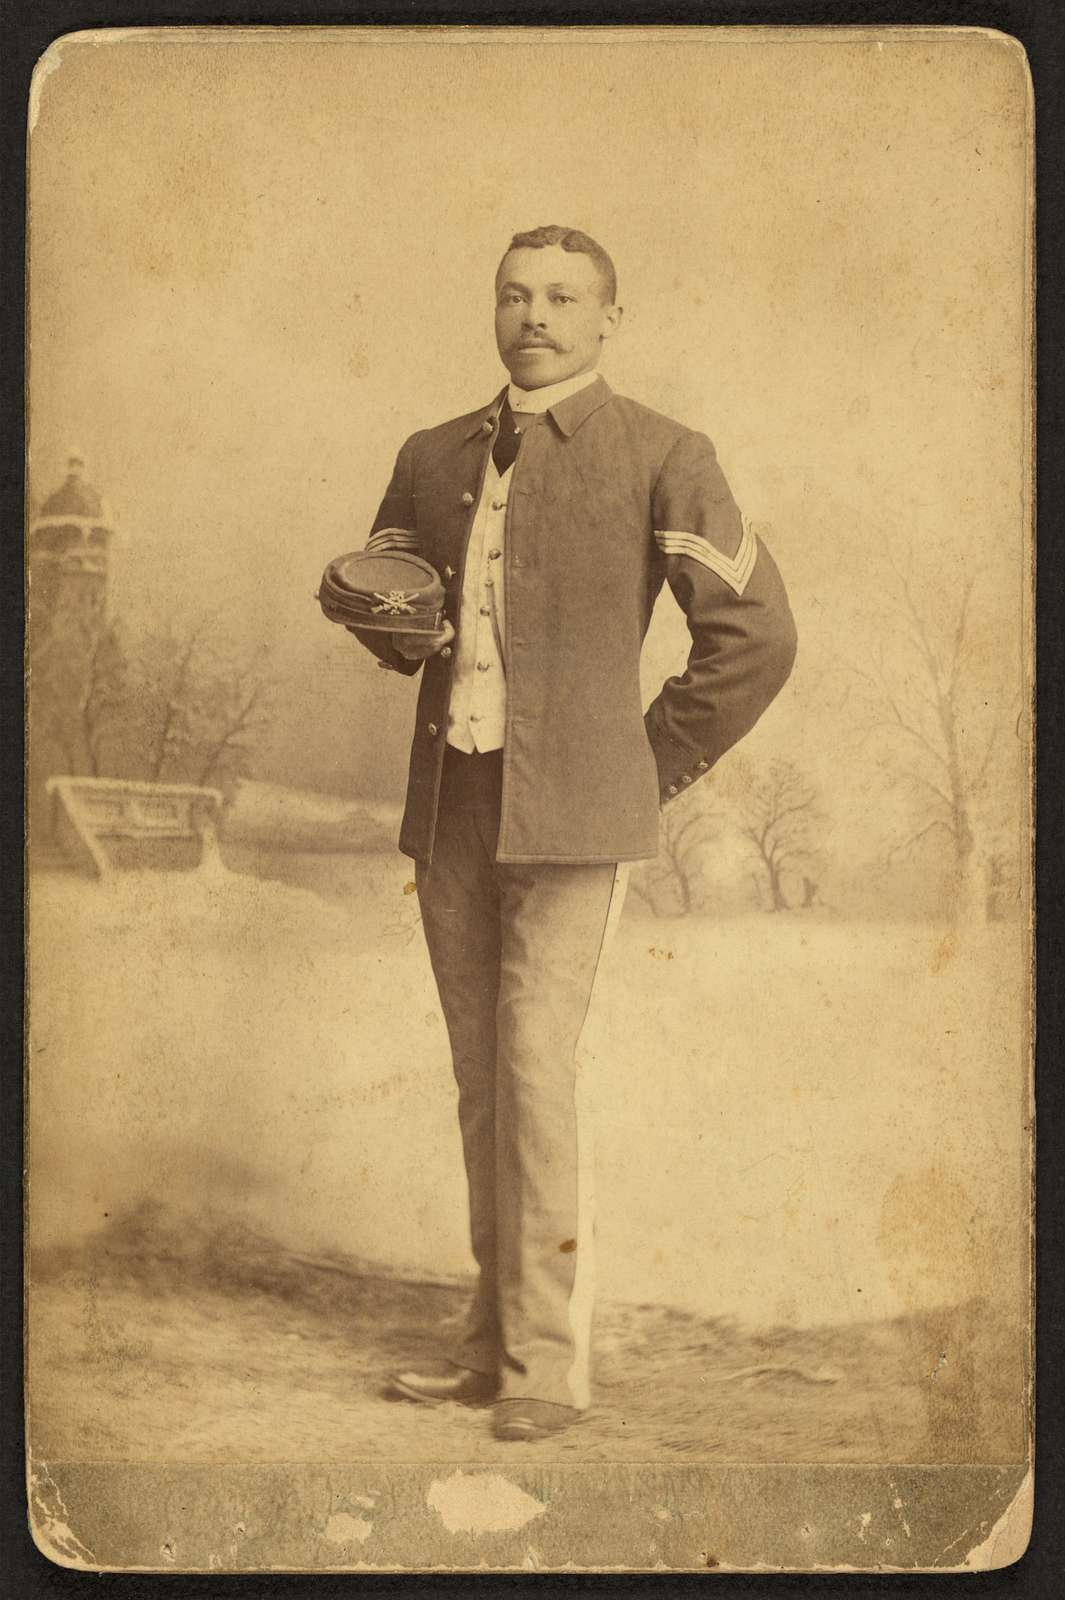 [Buffalo Soldier, 25th Infantry, Co.] / Goff, photographer, Fort Cust[e]r, Mont.